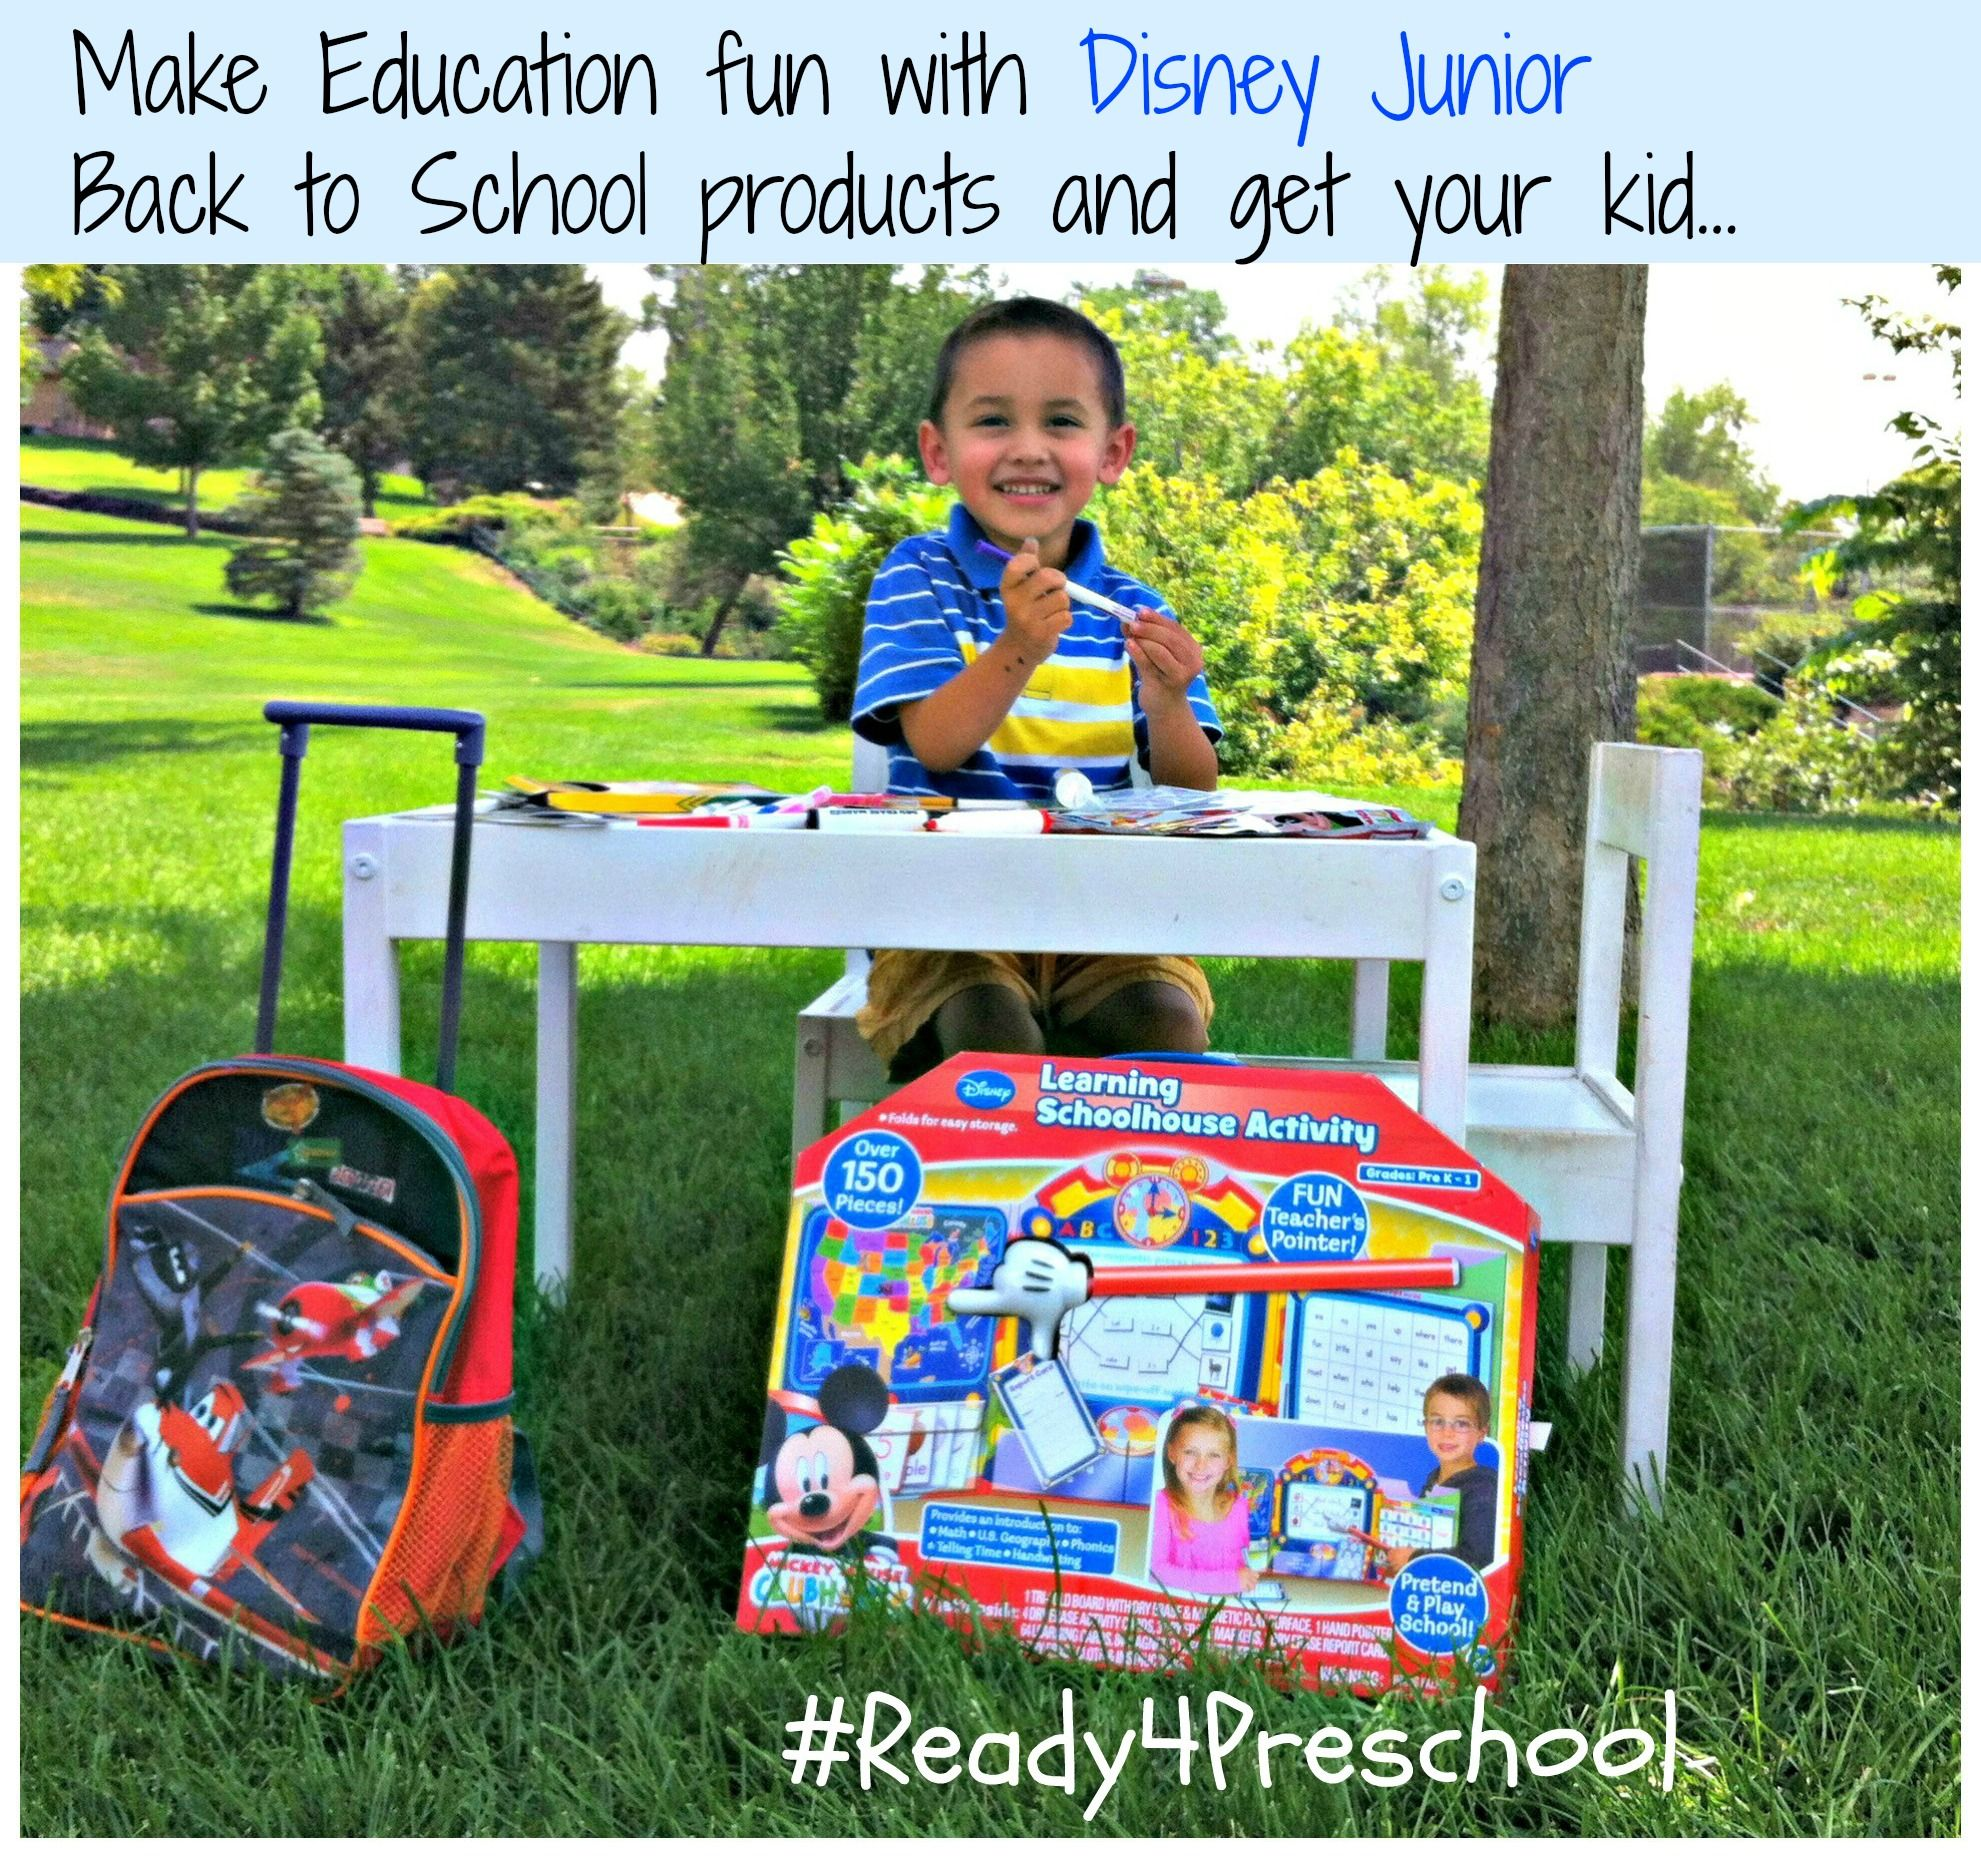 Make Preschool Learning More Exciting With Disney Junior